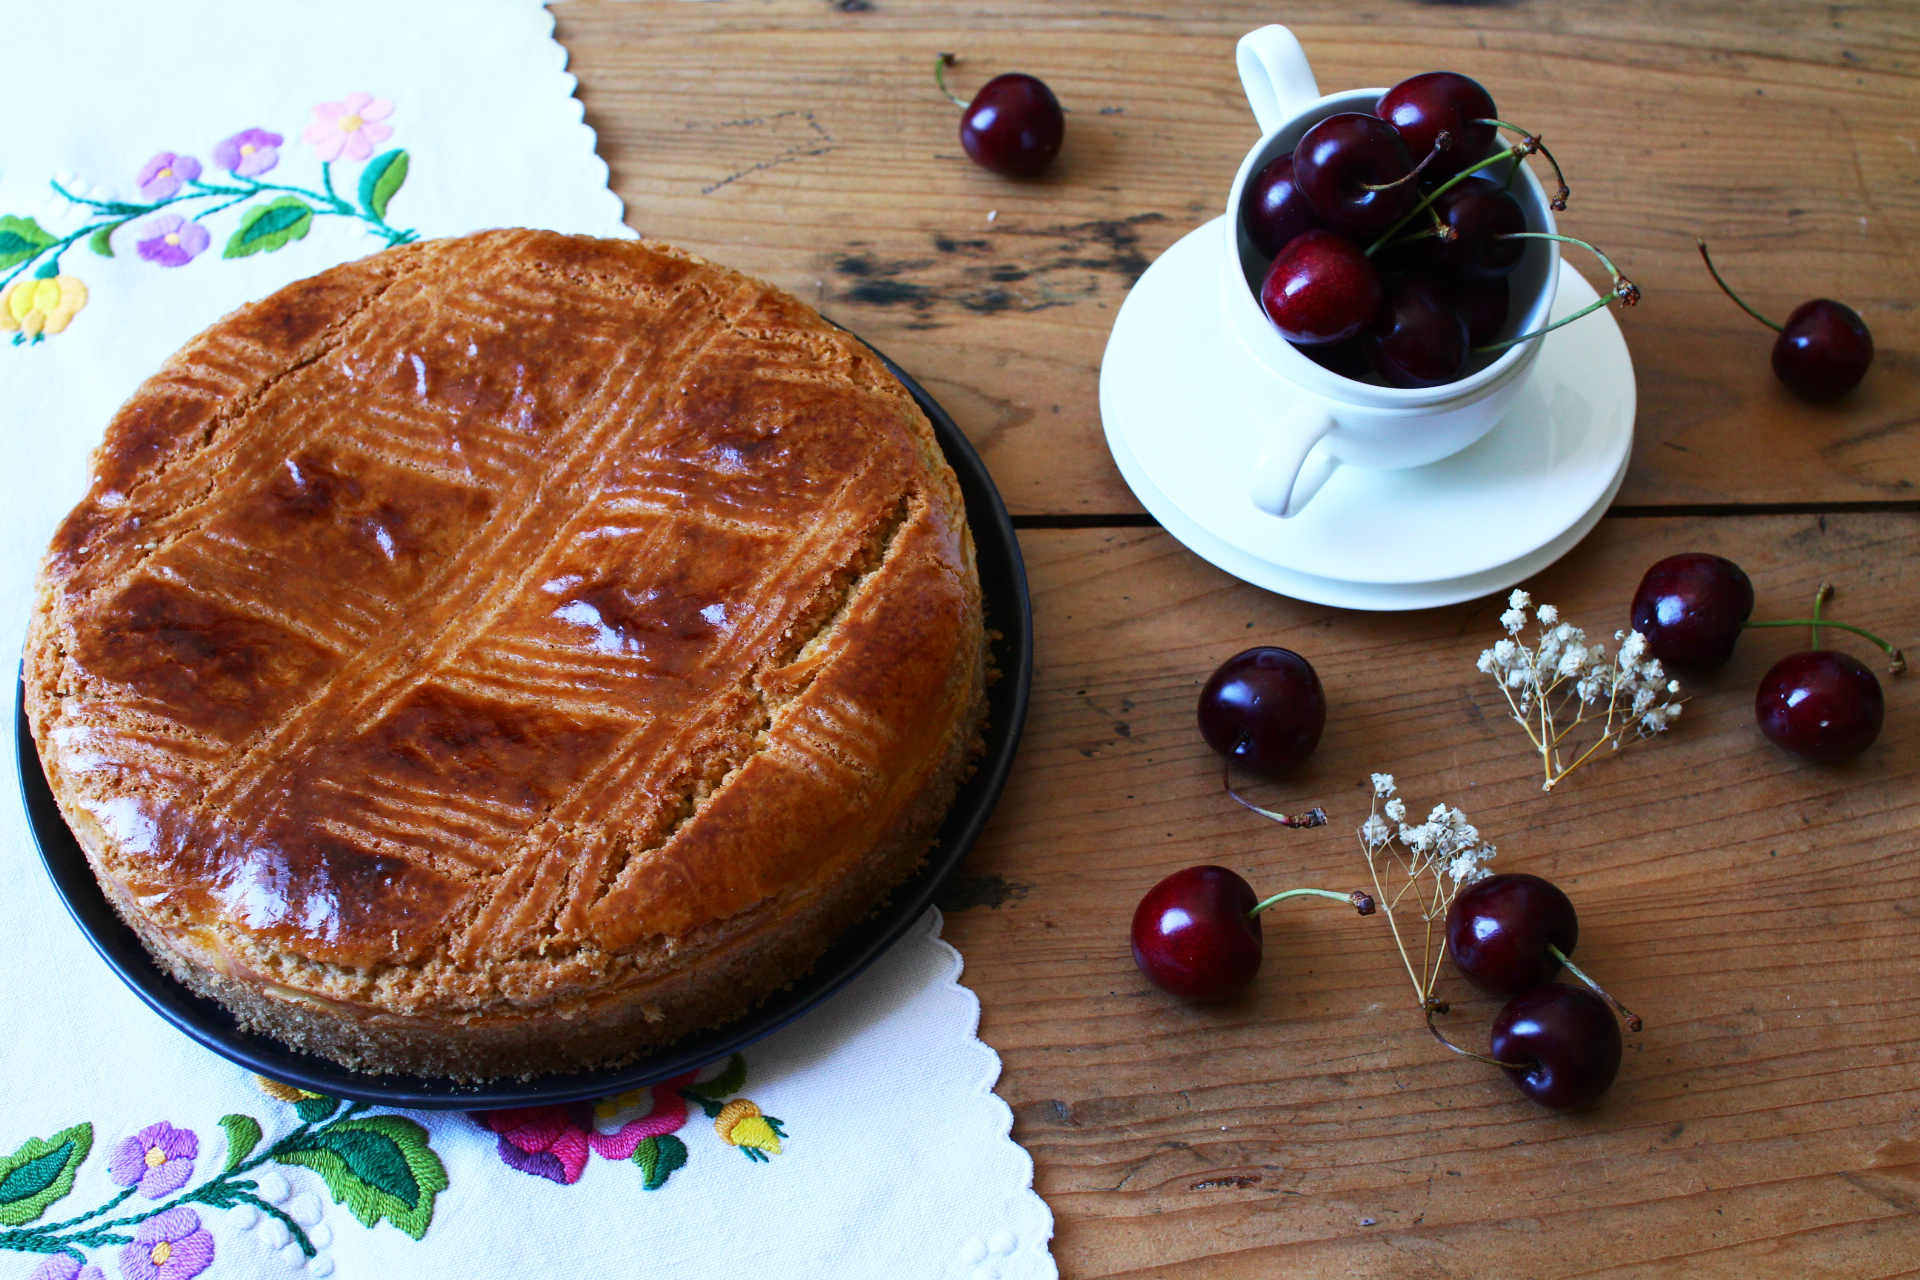 gateau basque cerise_